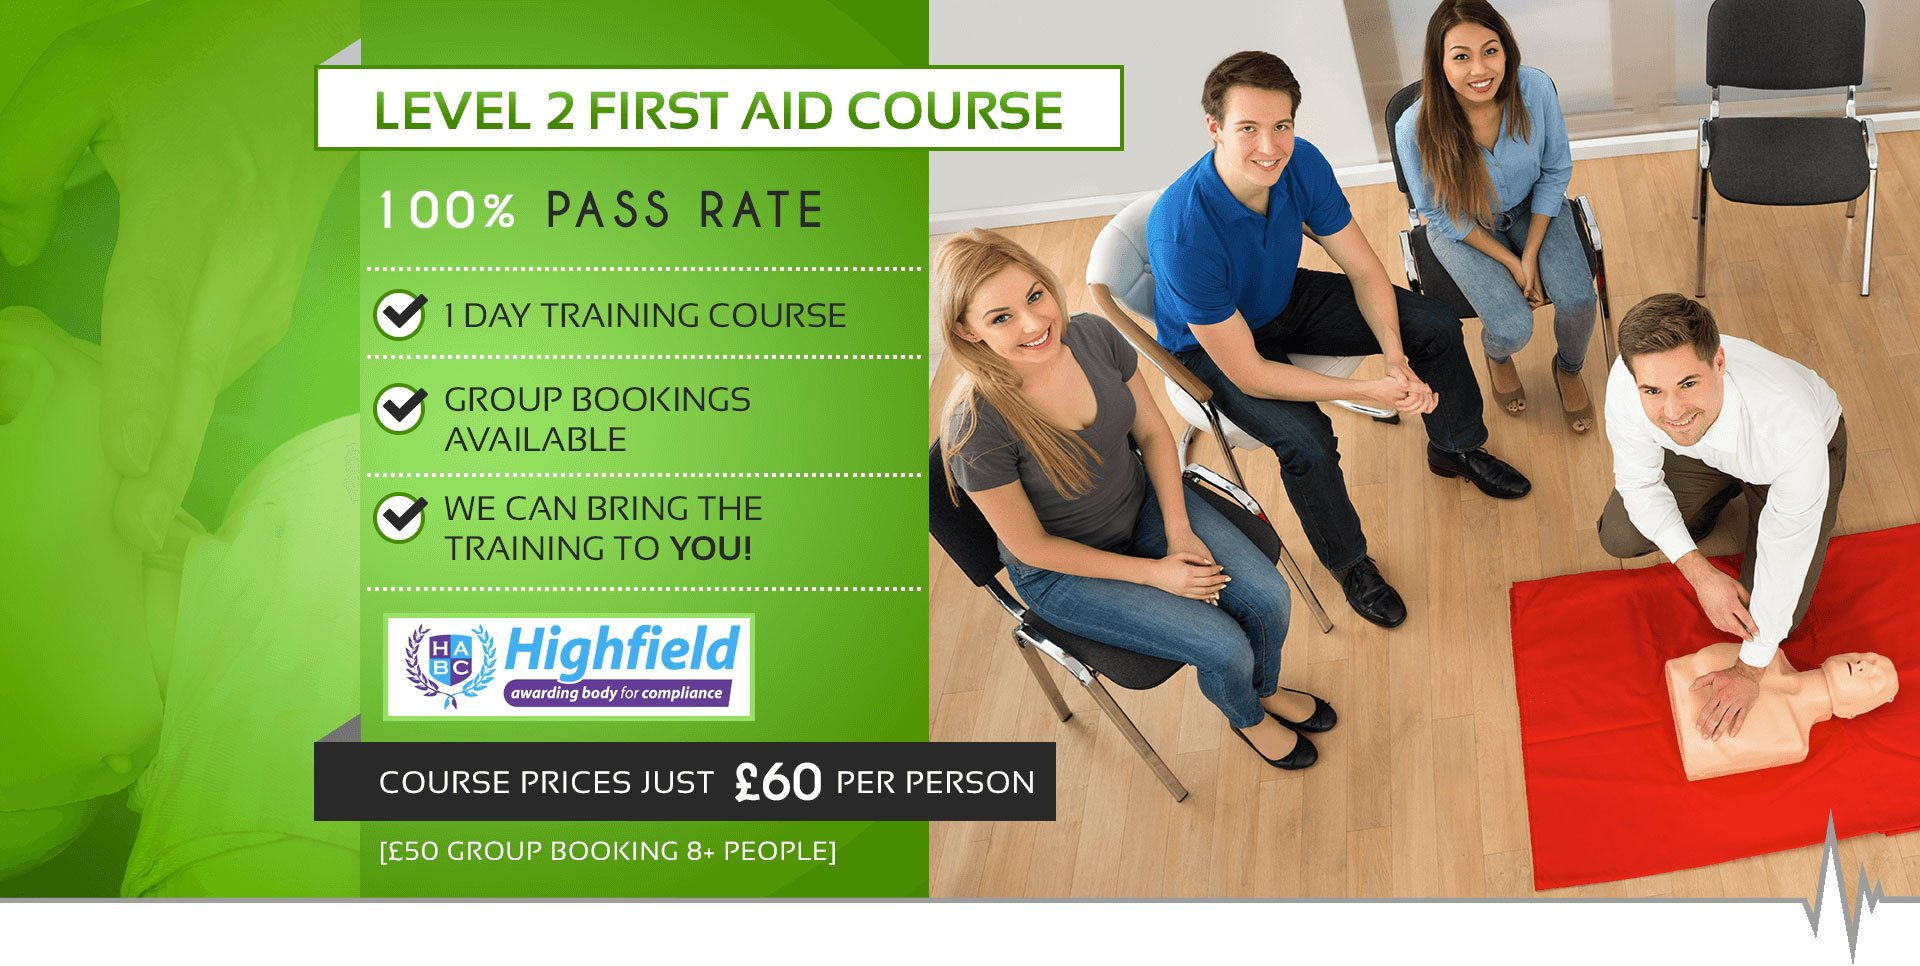 Why First Aid Course?